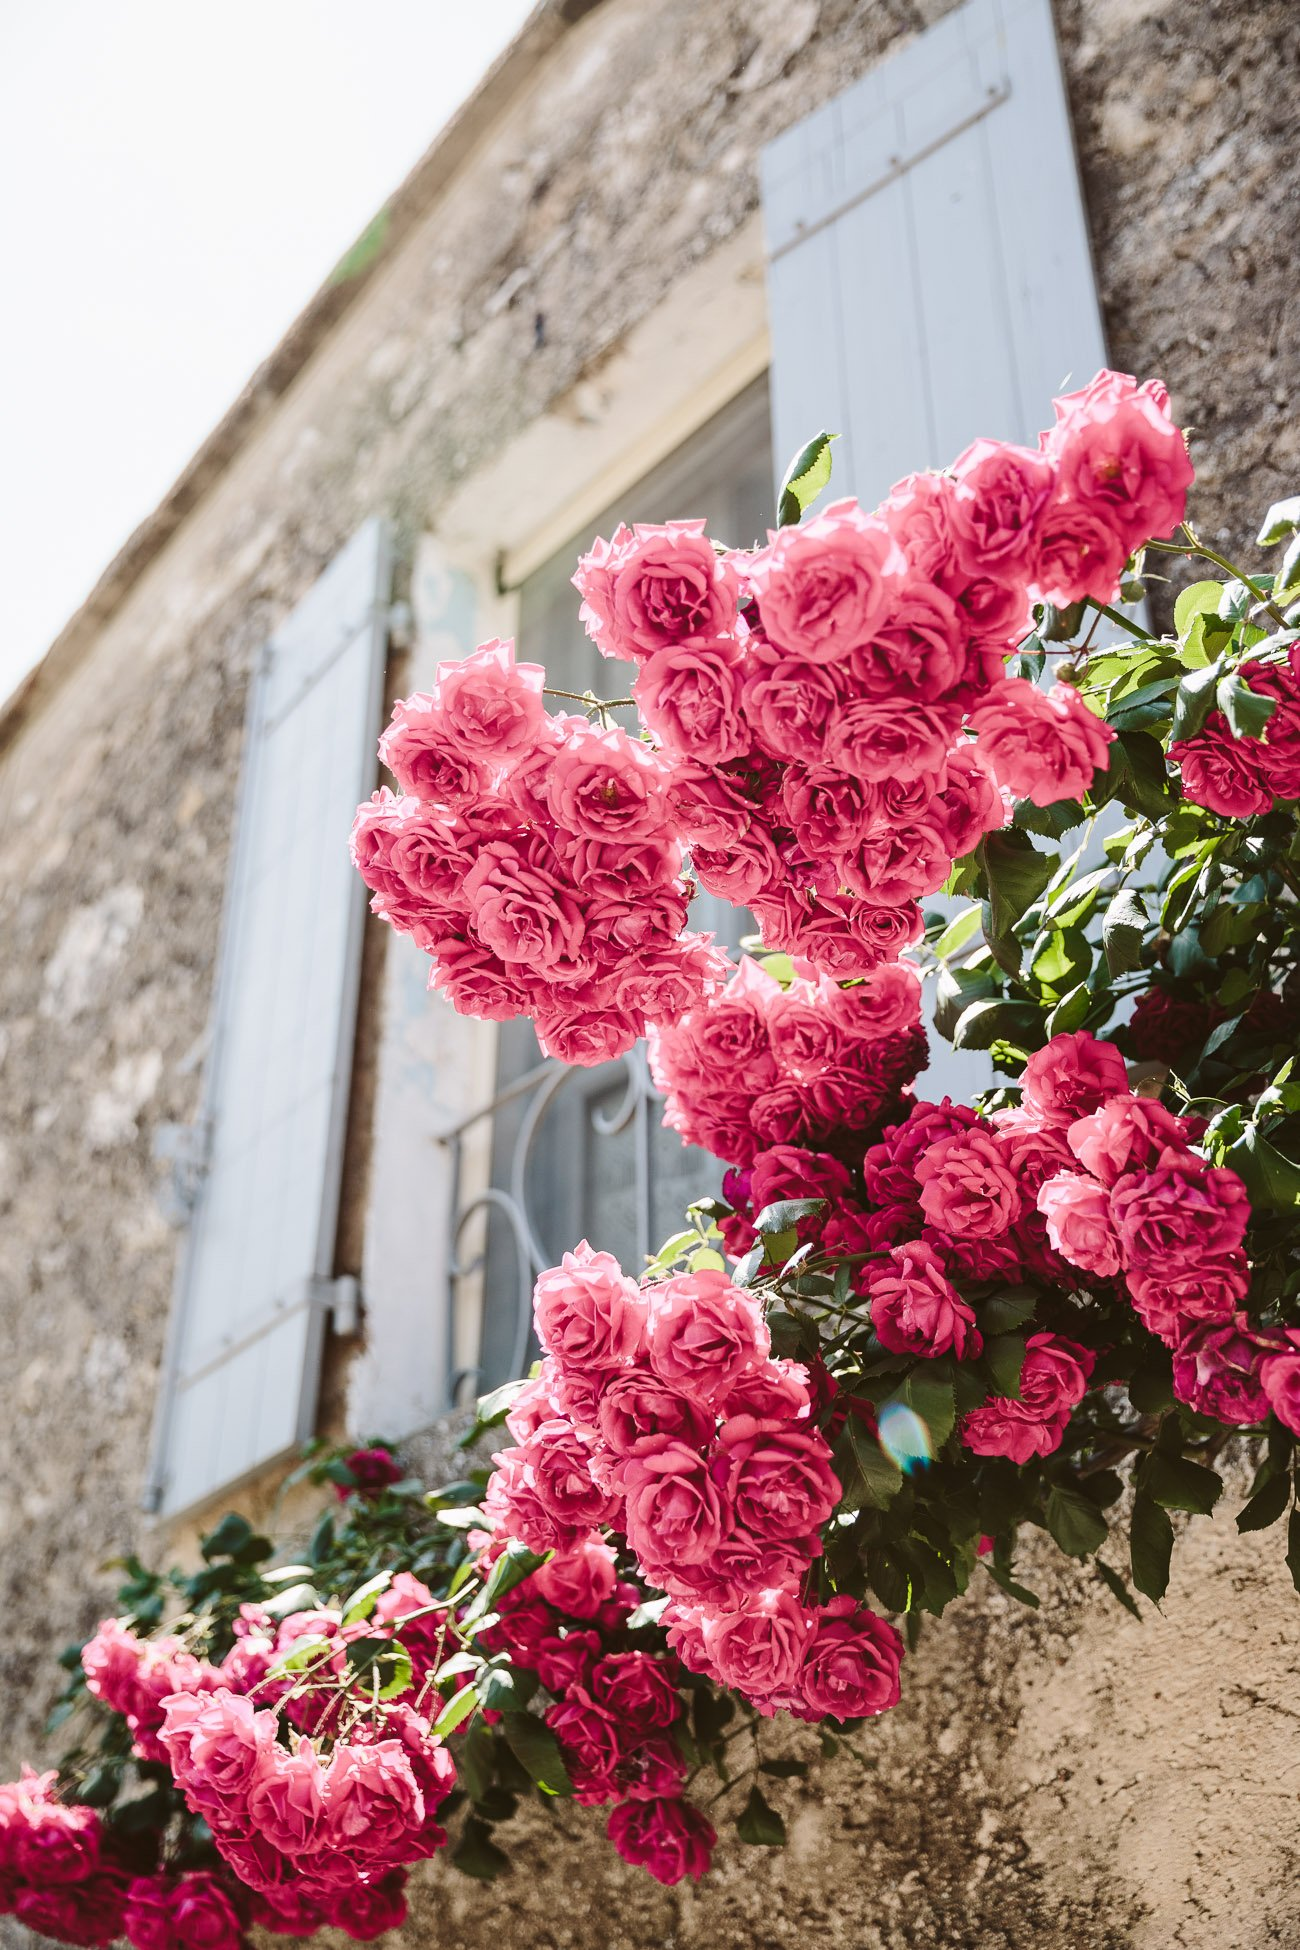 Roses in the Provence